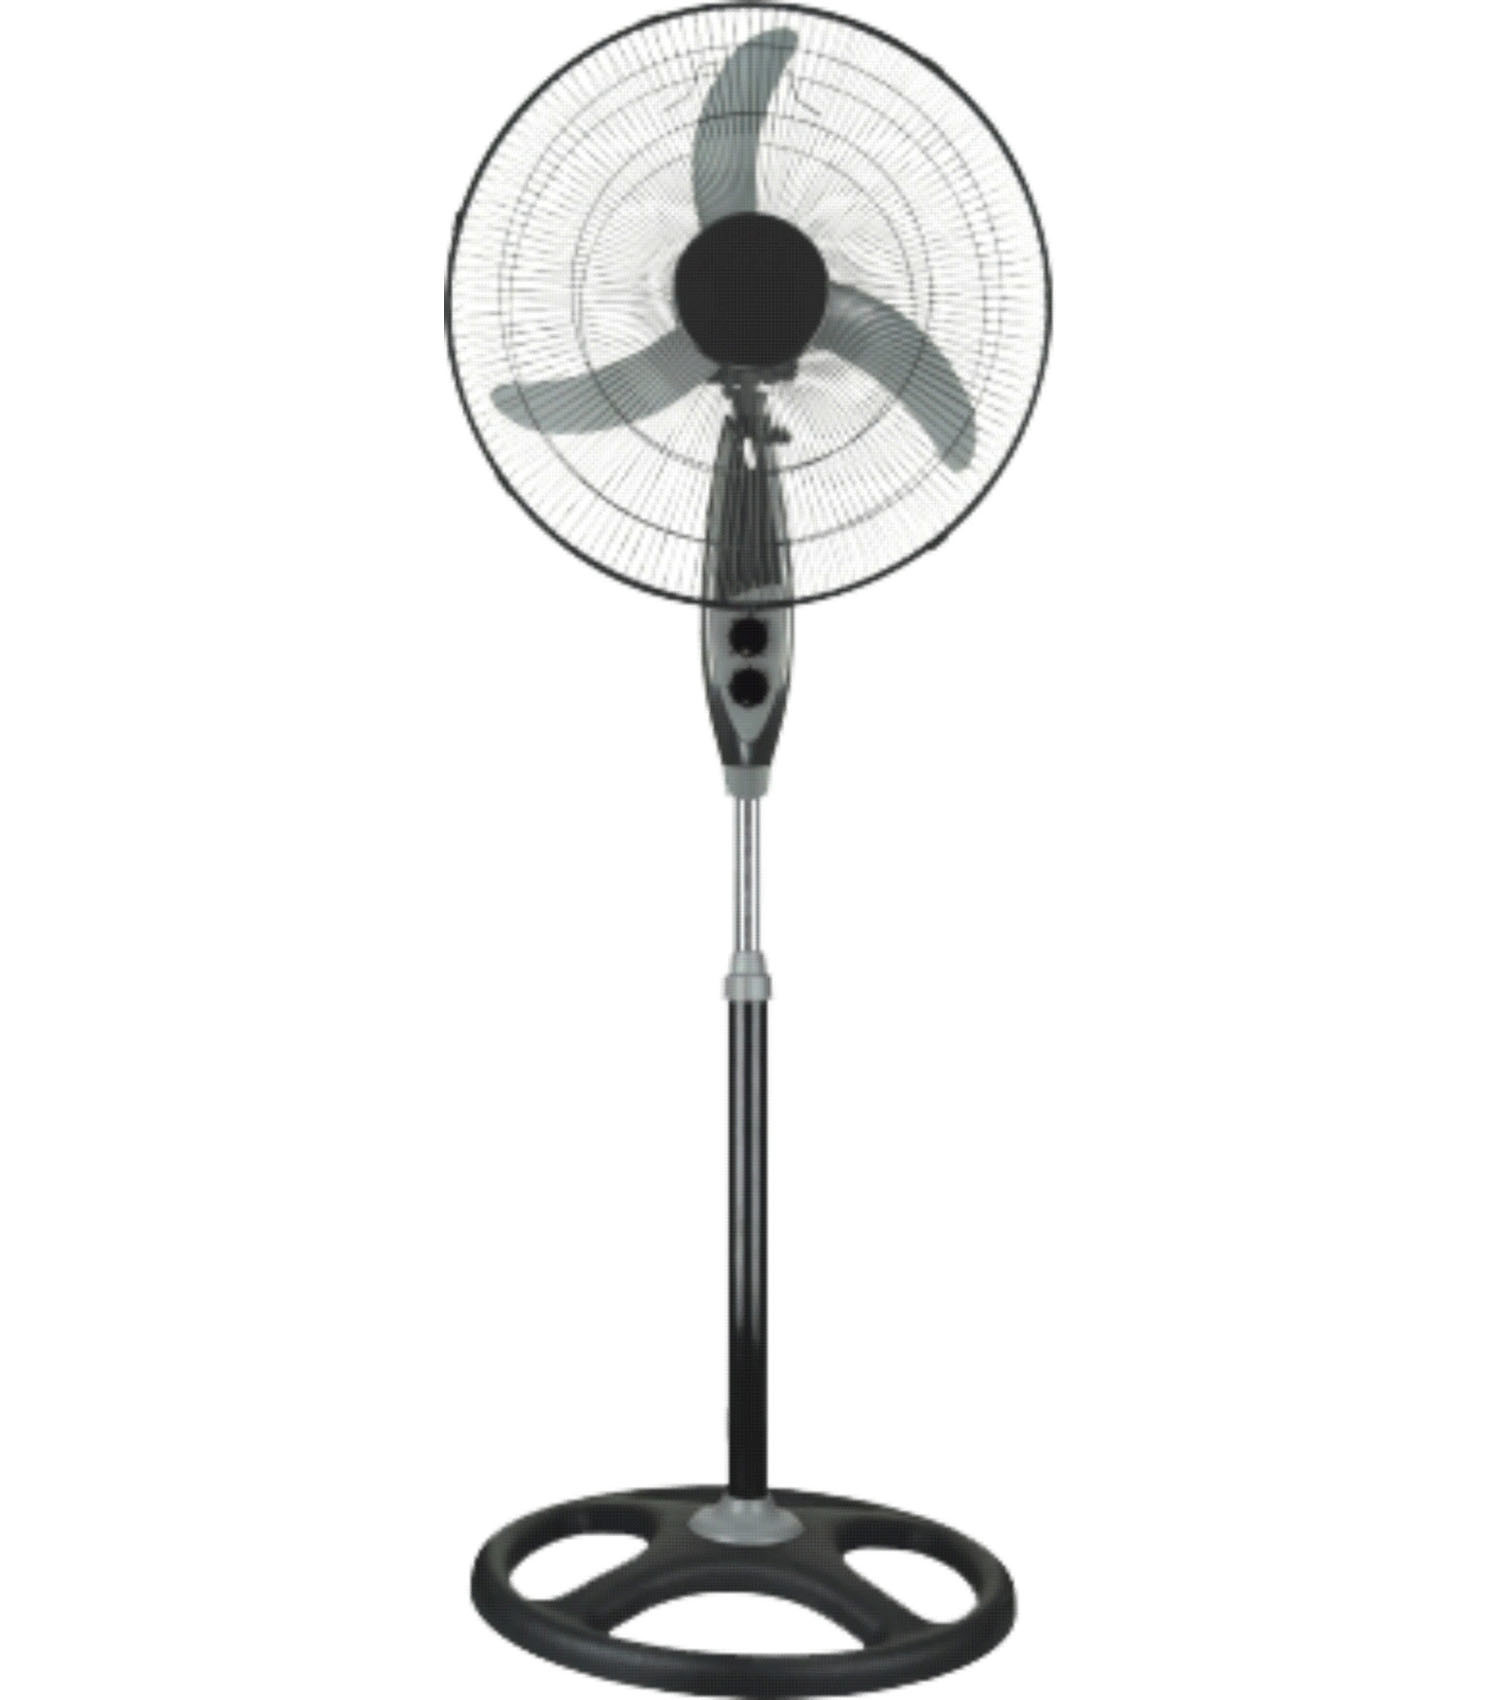 pedestal home reviews pdx retro improvement wayfair hunter comfort fan oscillating